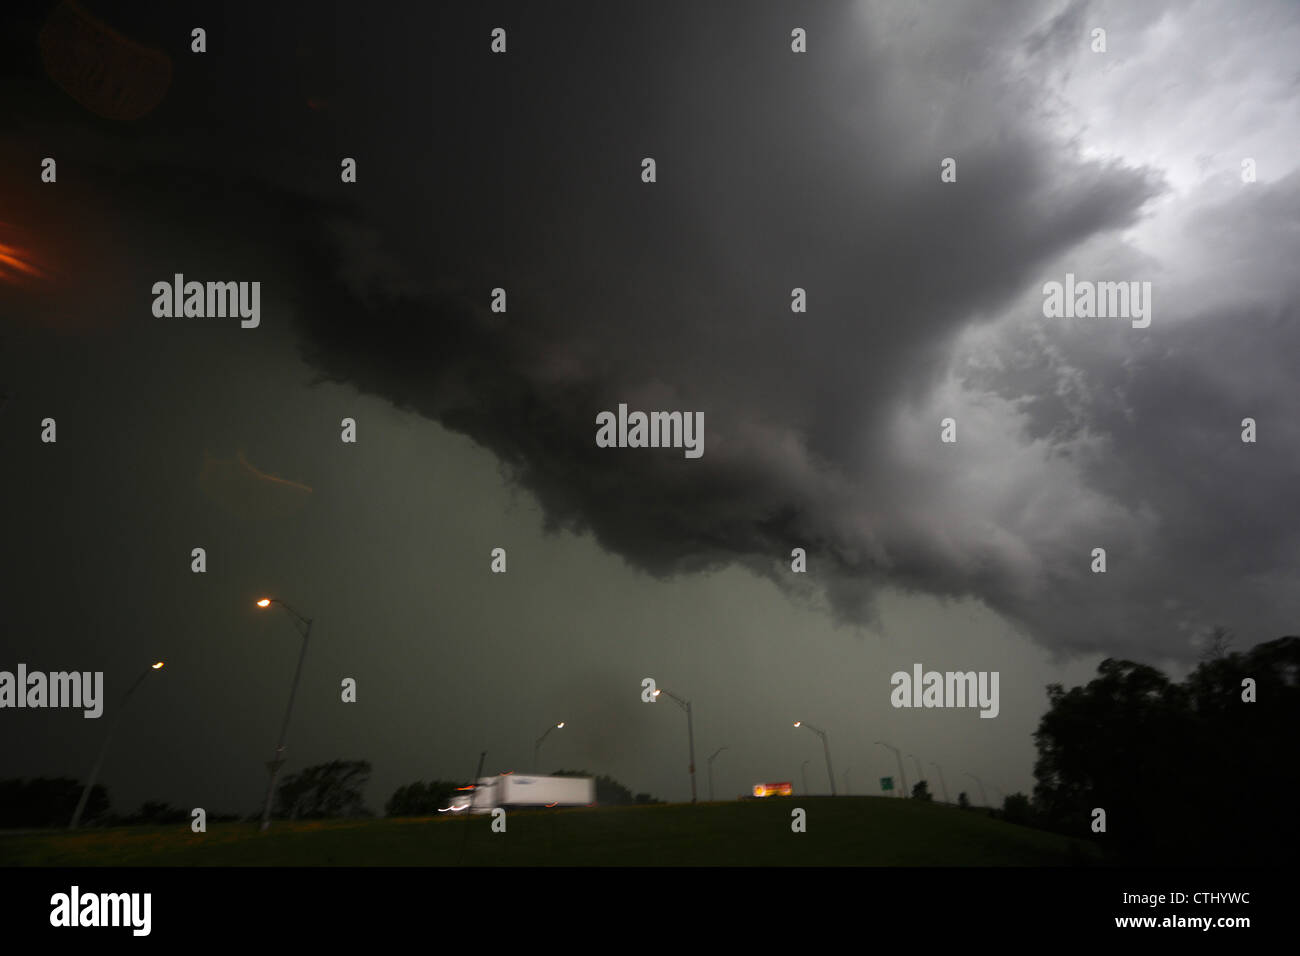 The front edge of a squall line thunderstorm opening up showing green background above highway. - Stock Image